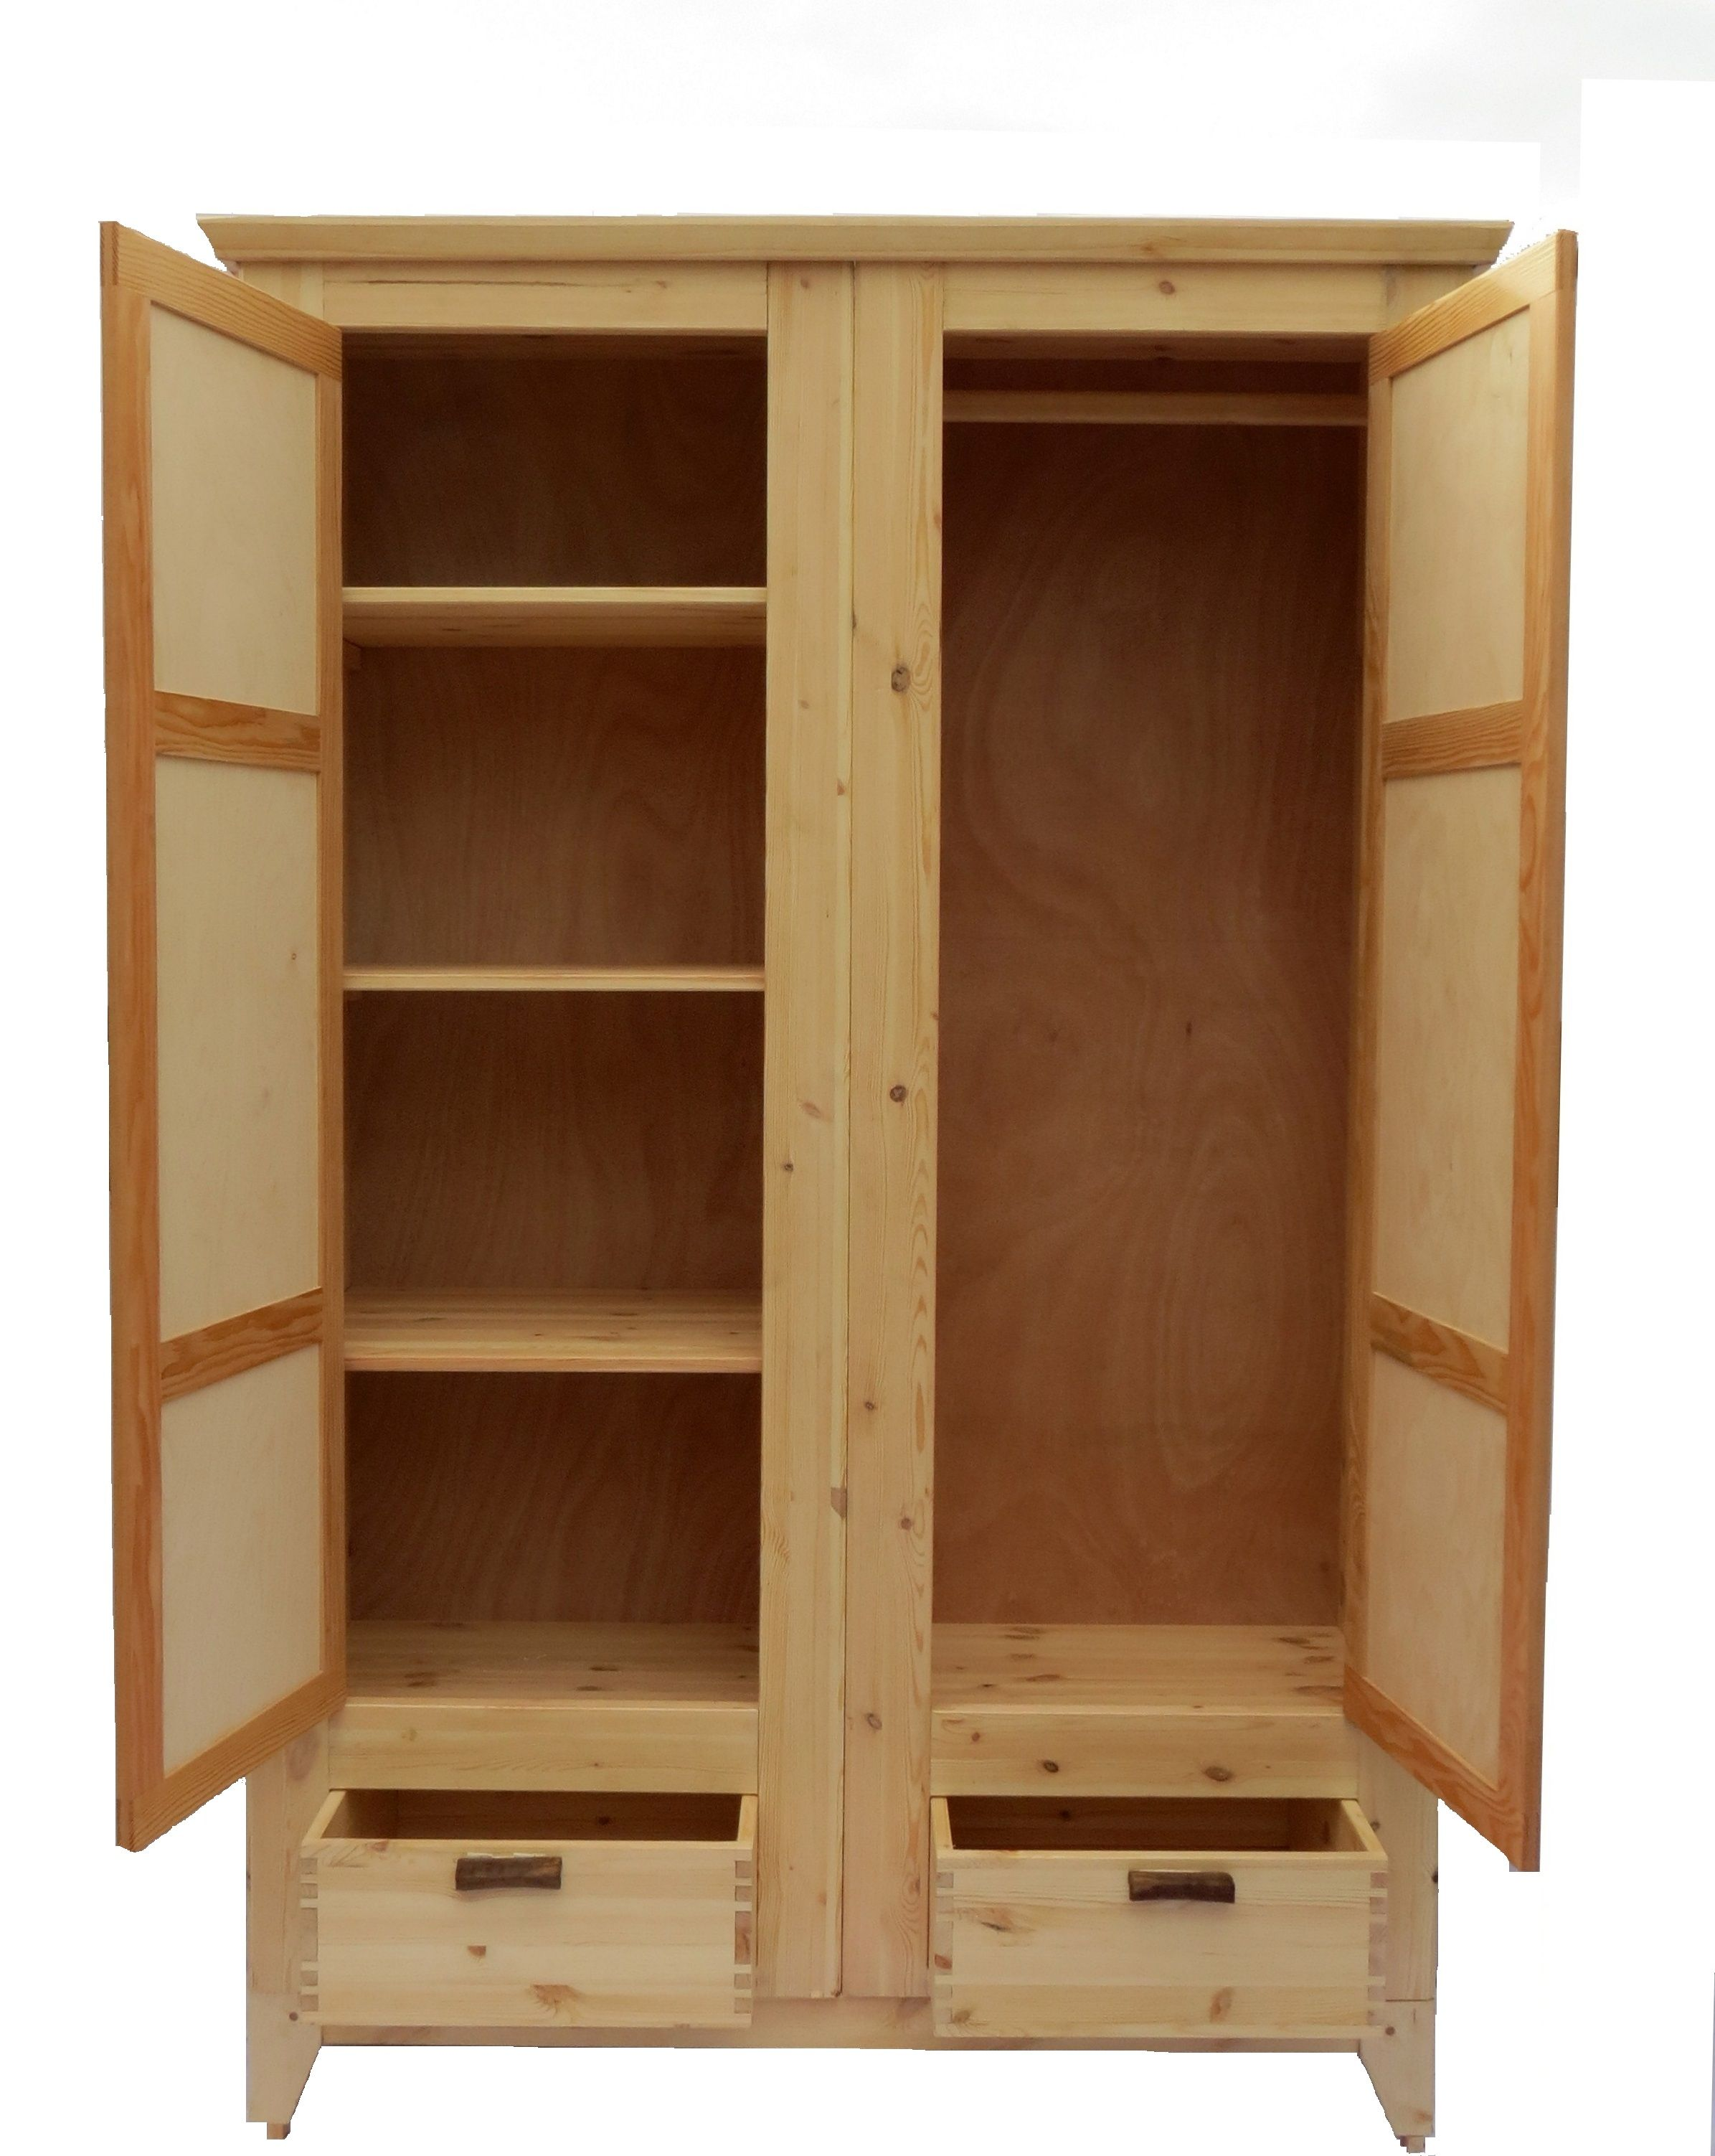 Cabinet Design For Clothes clothes cabinet - reader's gallery - fine woodworking | М. ШКАФЫ